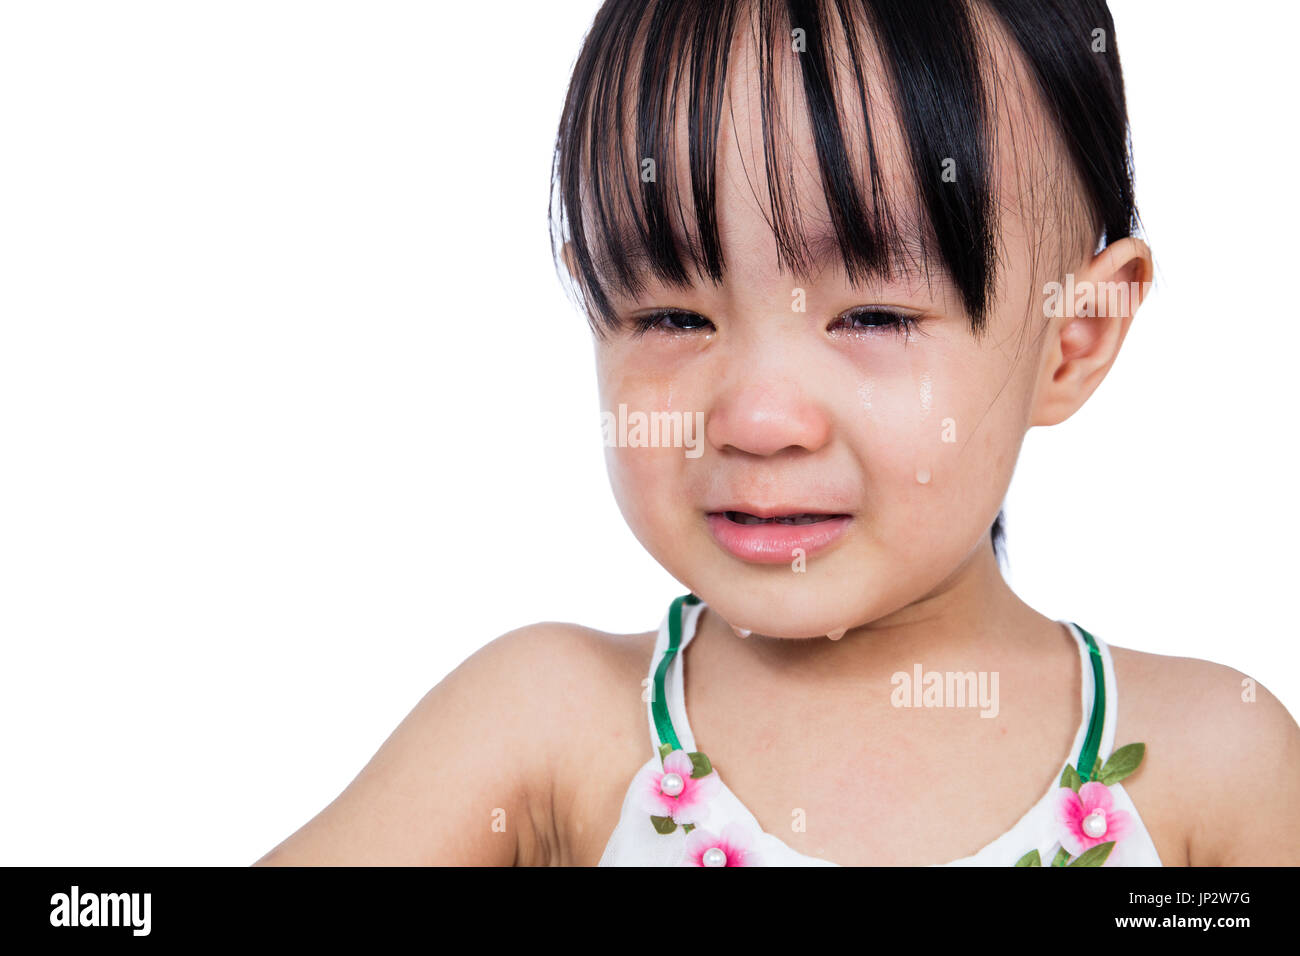 girl crying in despair grief stock photos amp girl crying in